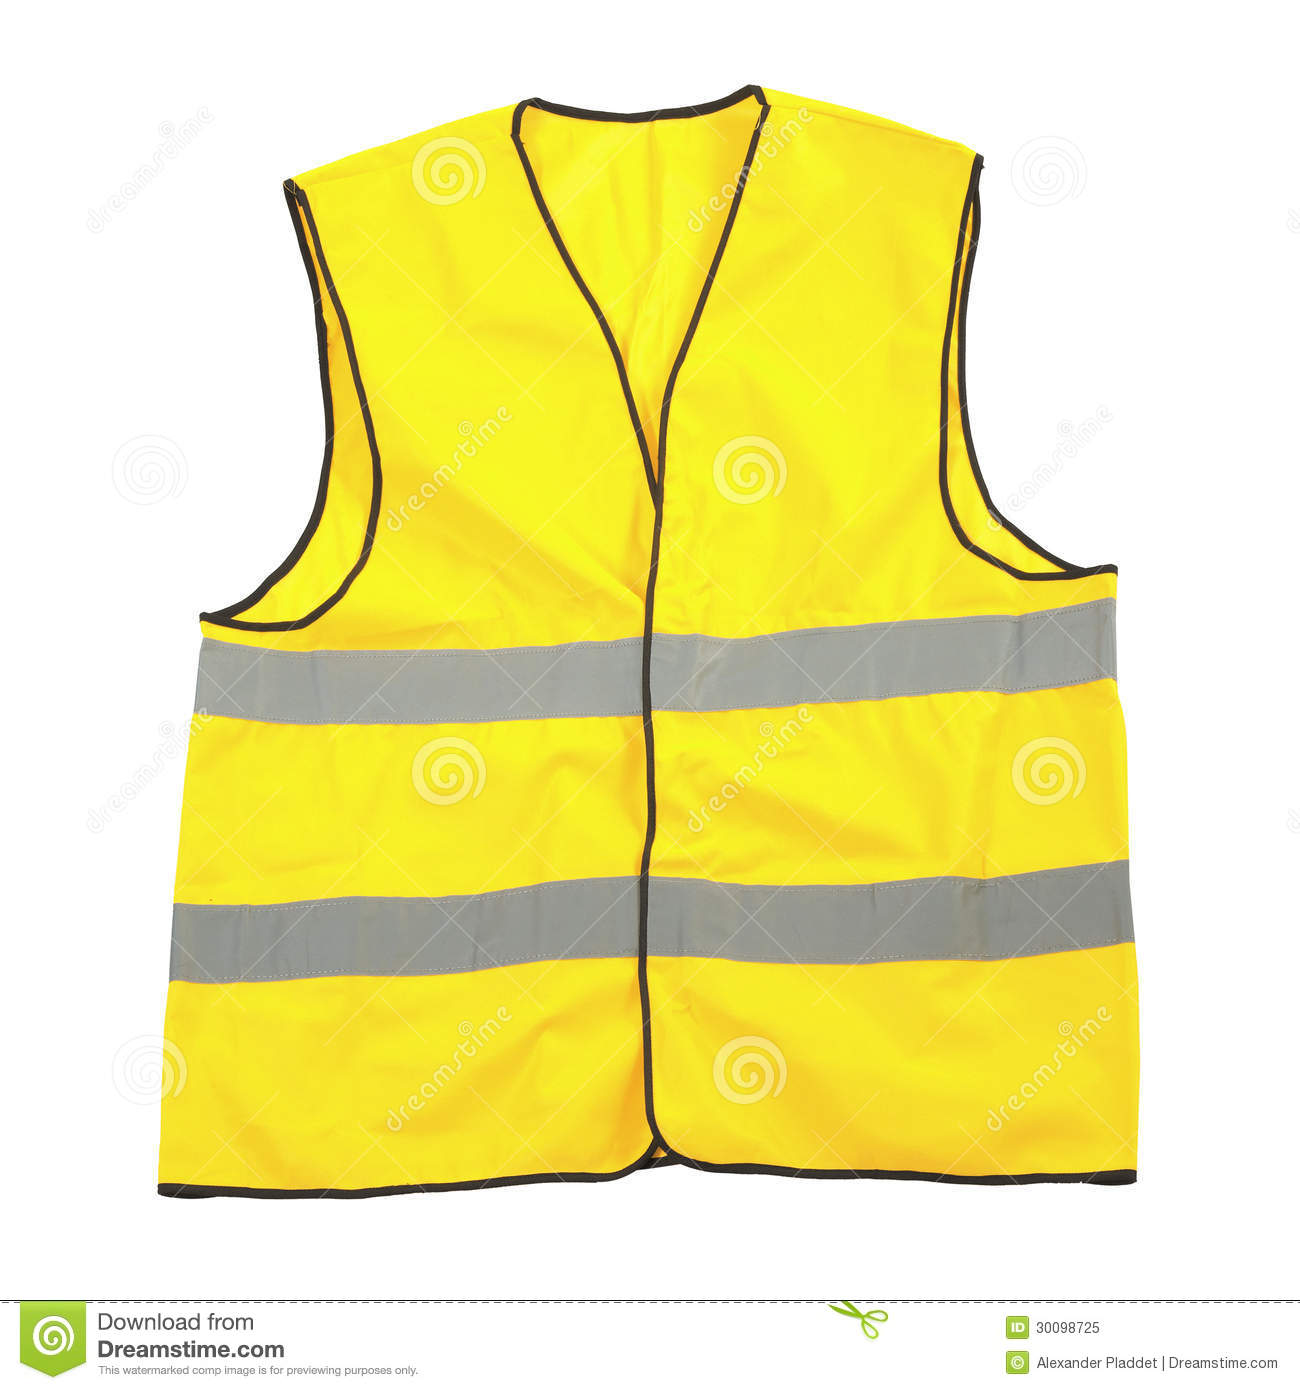 Yellow reflective safety jacket - or vest - isolated on a white ...